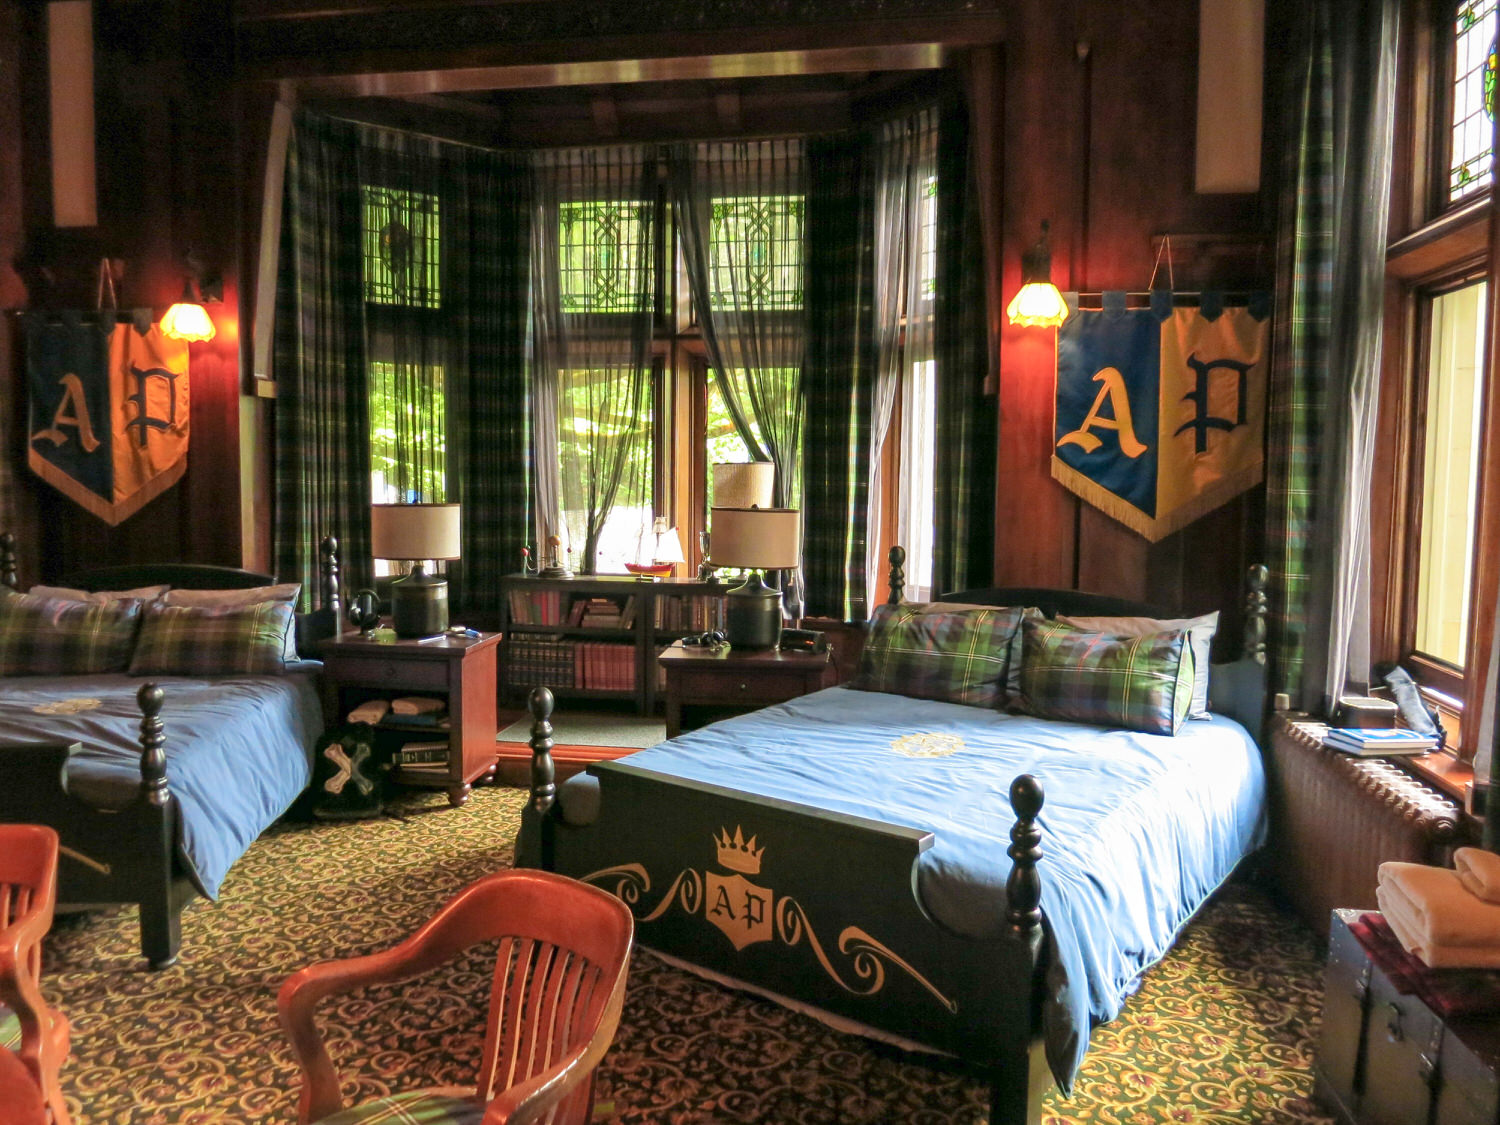 Another view of the boy's dorm room in Auradon prep.